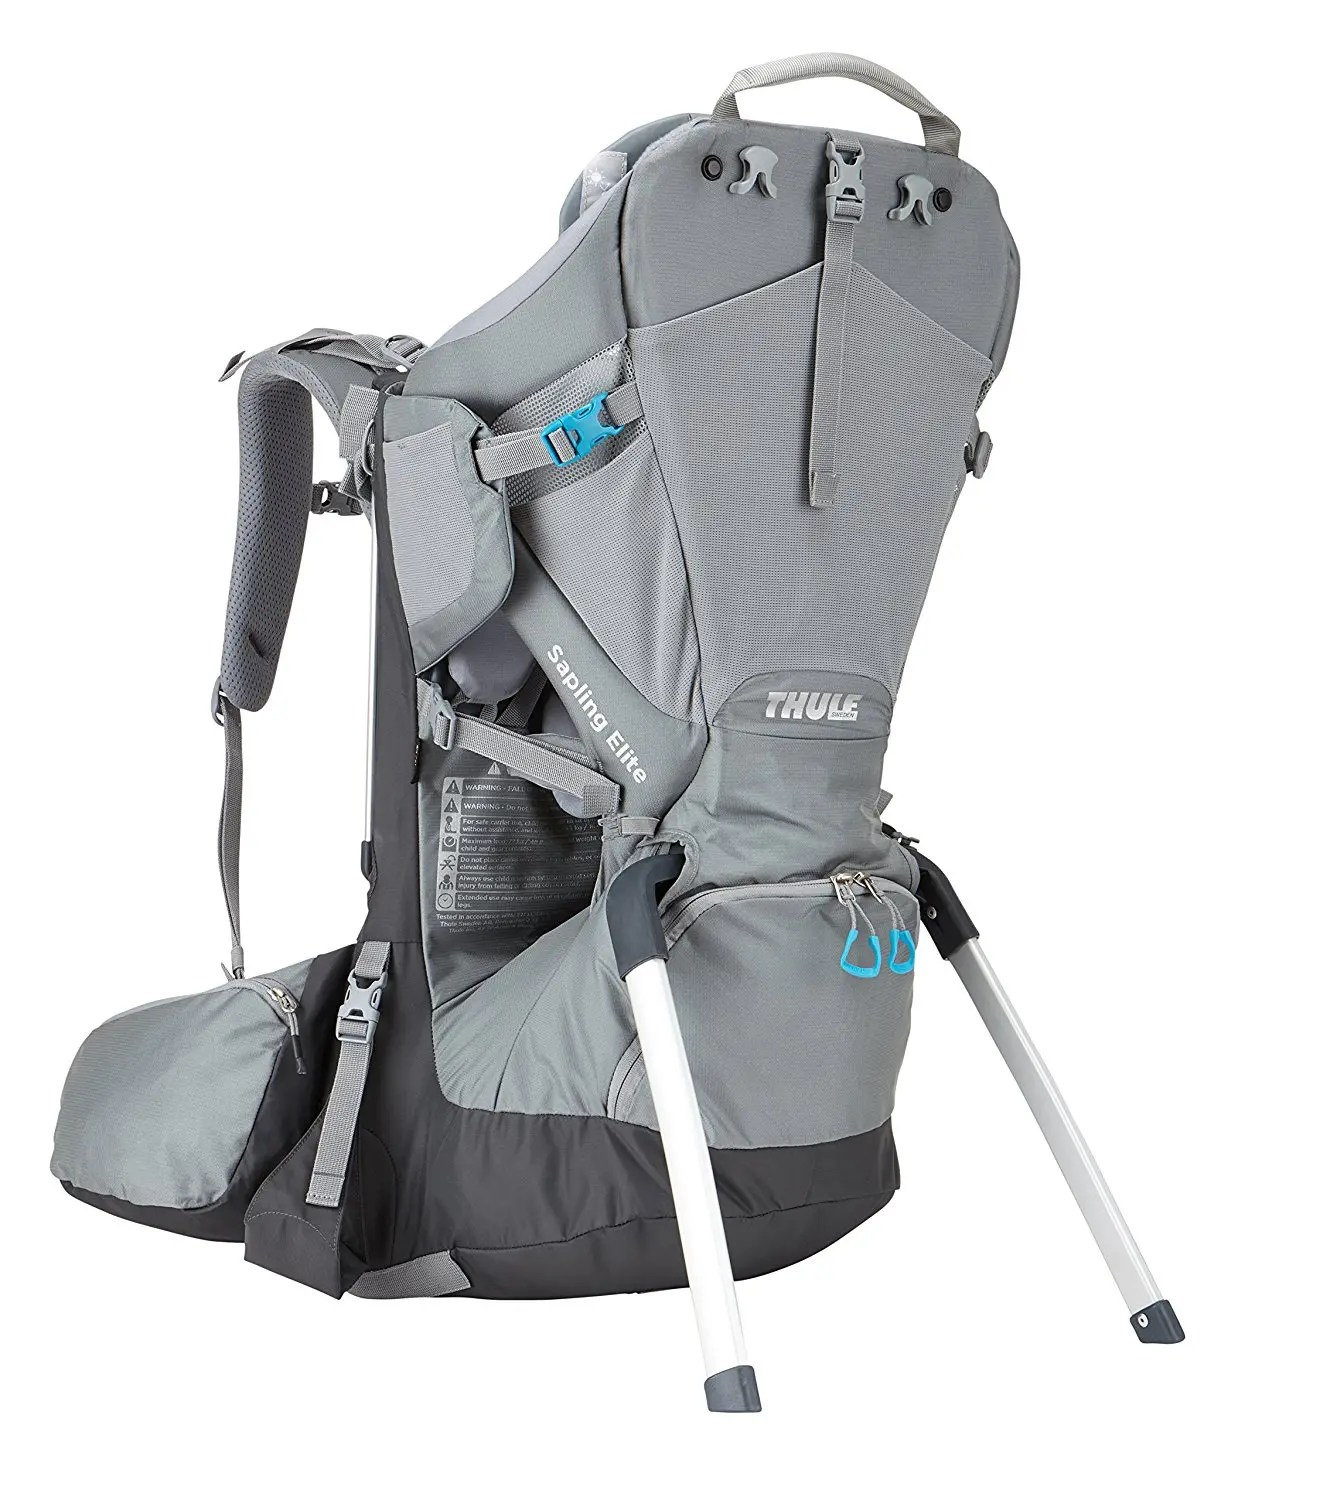 The Best Baby Backpack for the Hiking Adventurer 9 More Options